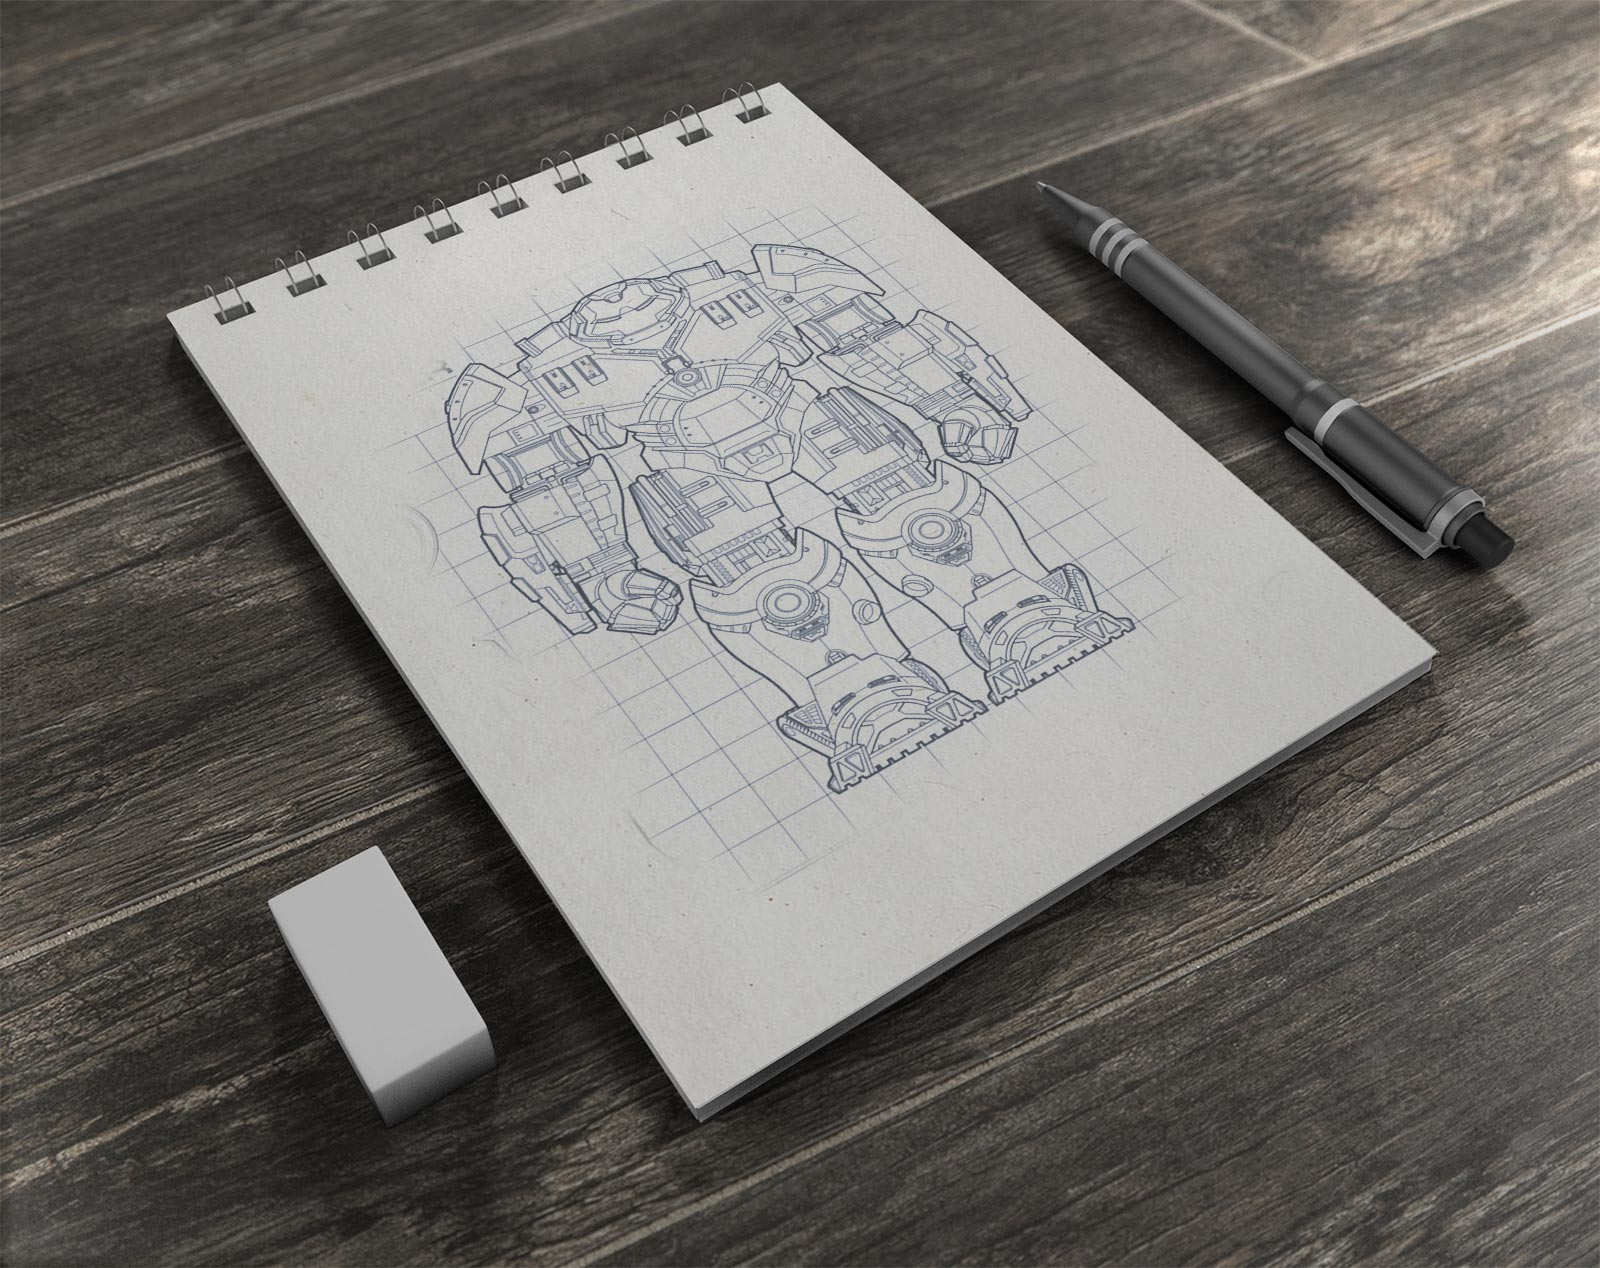 Free-Illustrations-Sketch-Book-Mockup-PSD-File